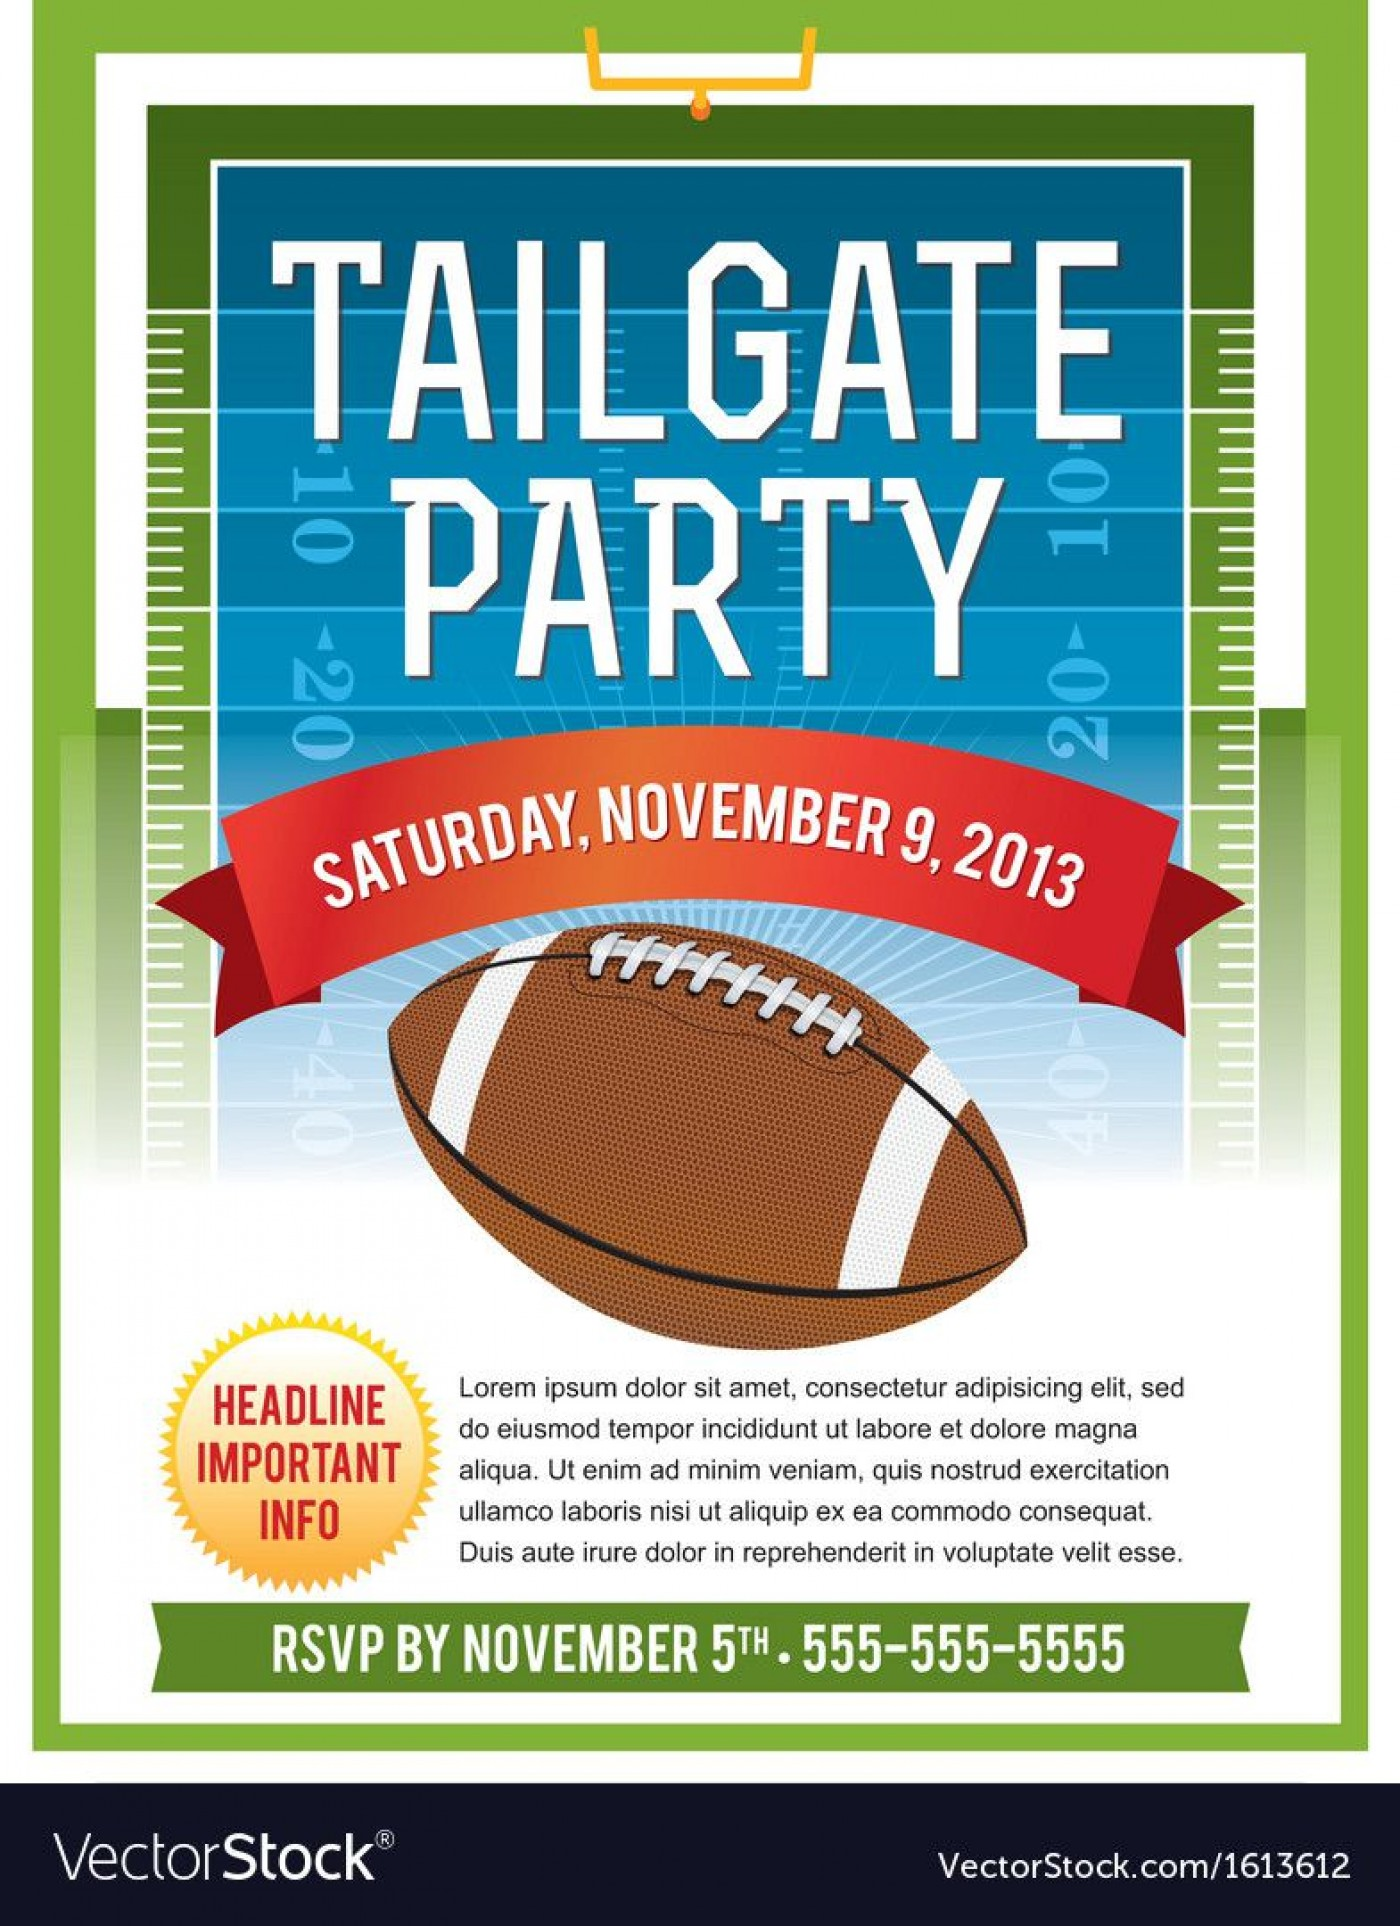 006 Excellent Free Tailgate Party Flyer Template Download Photo 1400